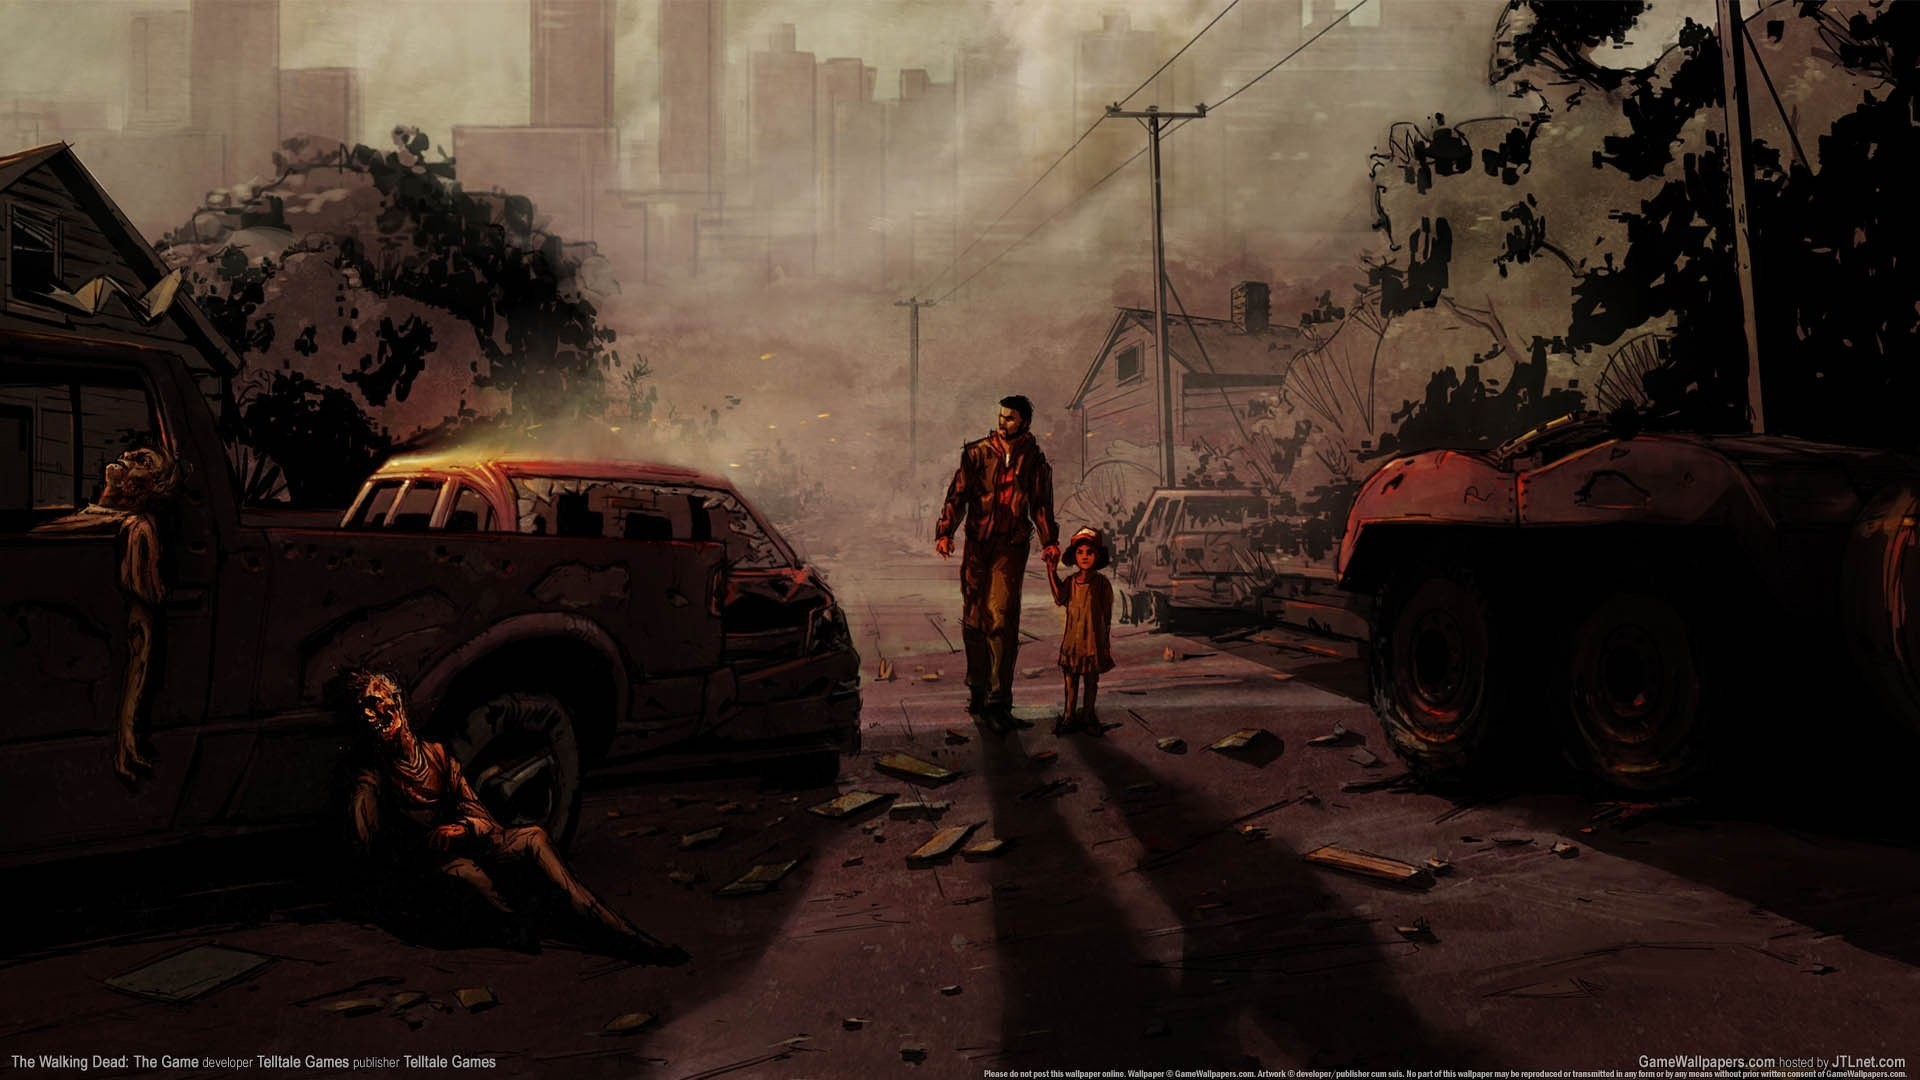 1920x1080 the walking dead the game the walking dead game art art picture men child zombie  apocalypse